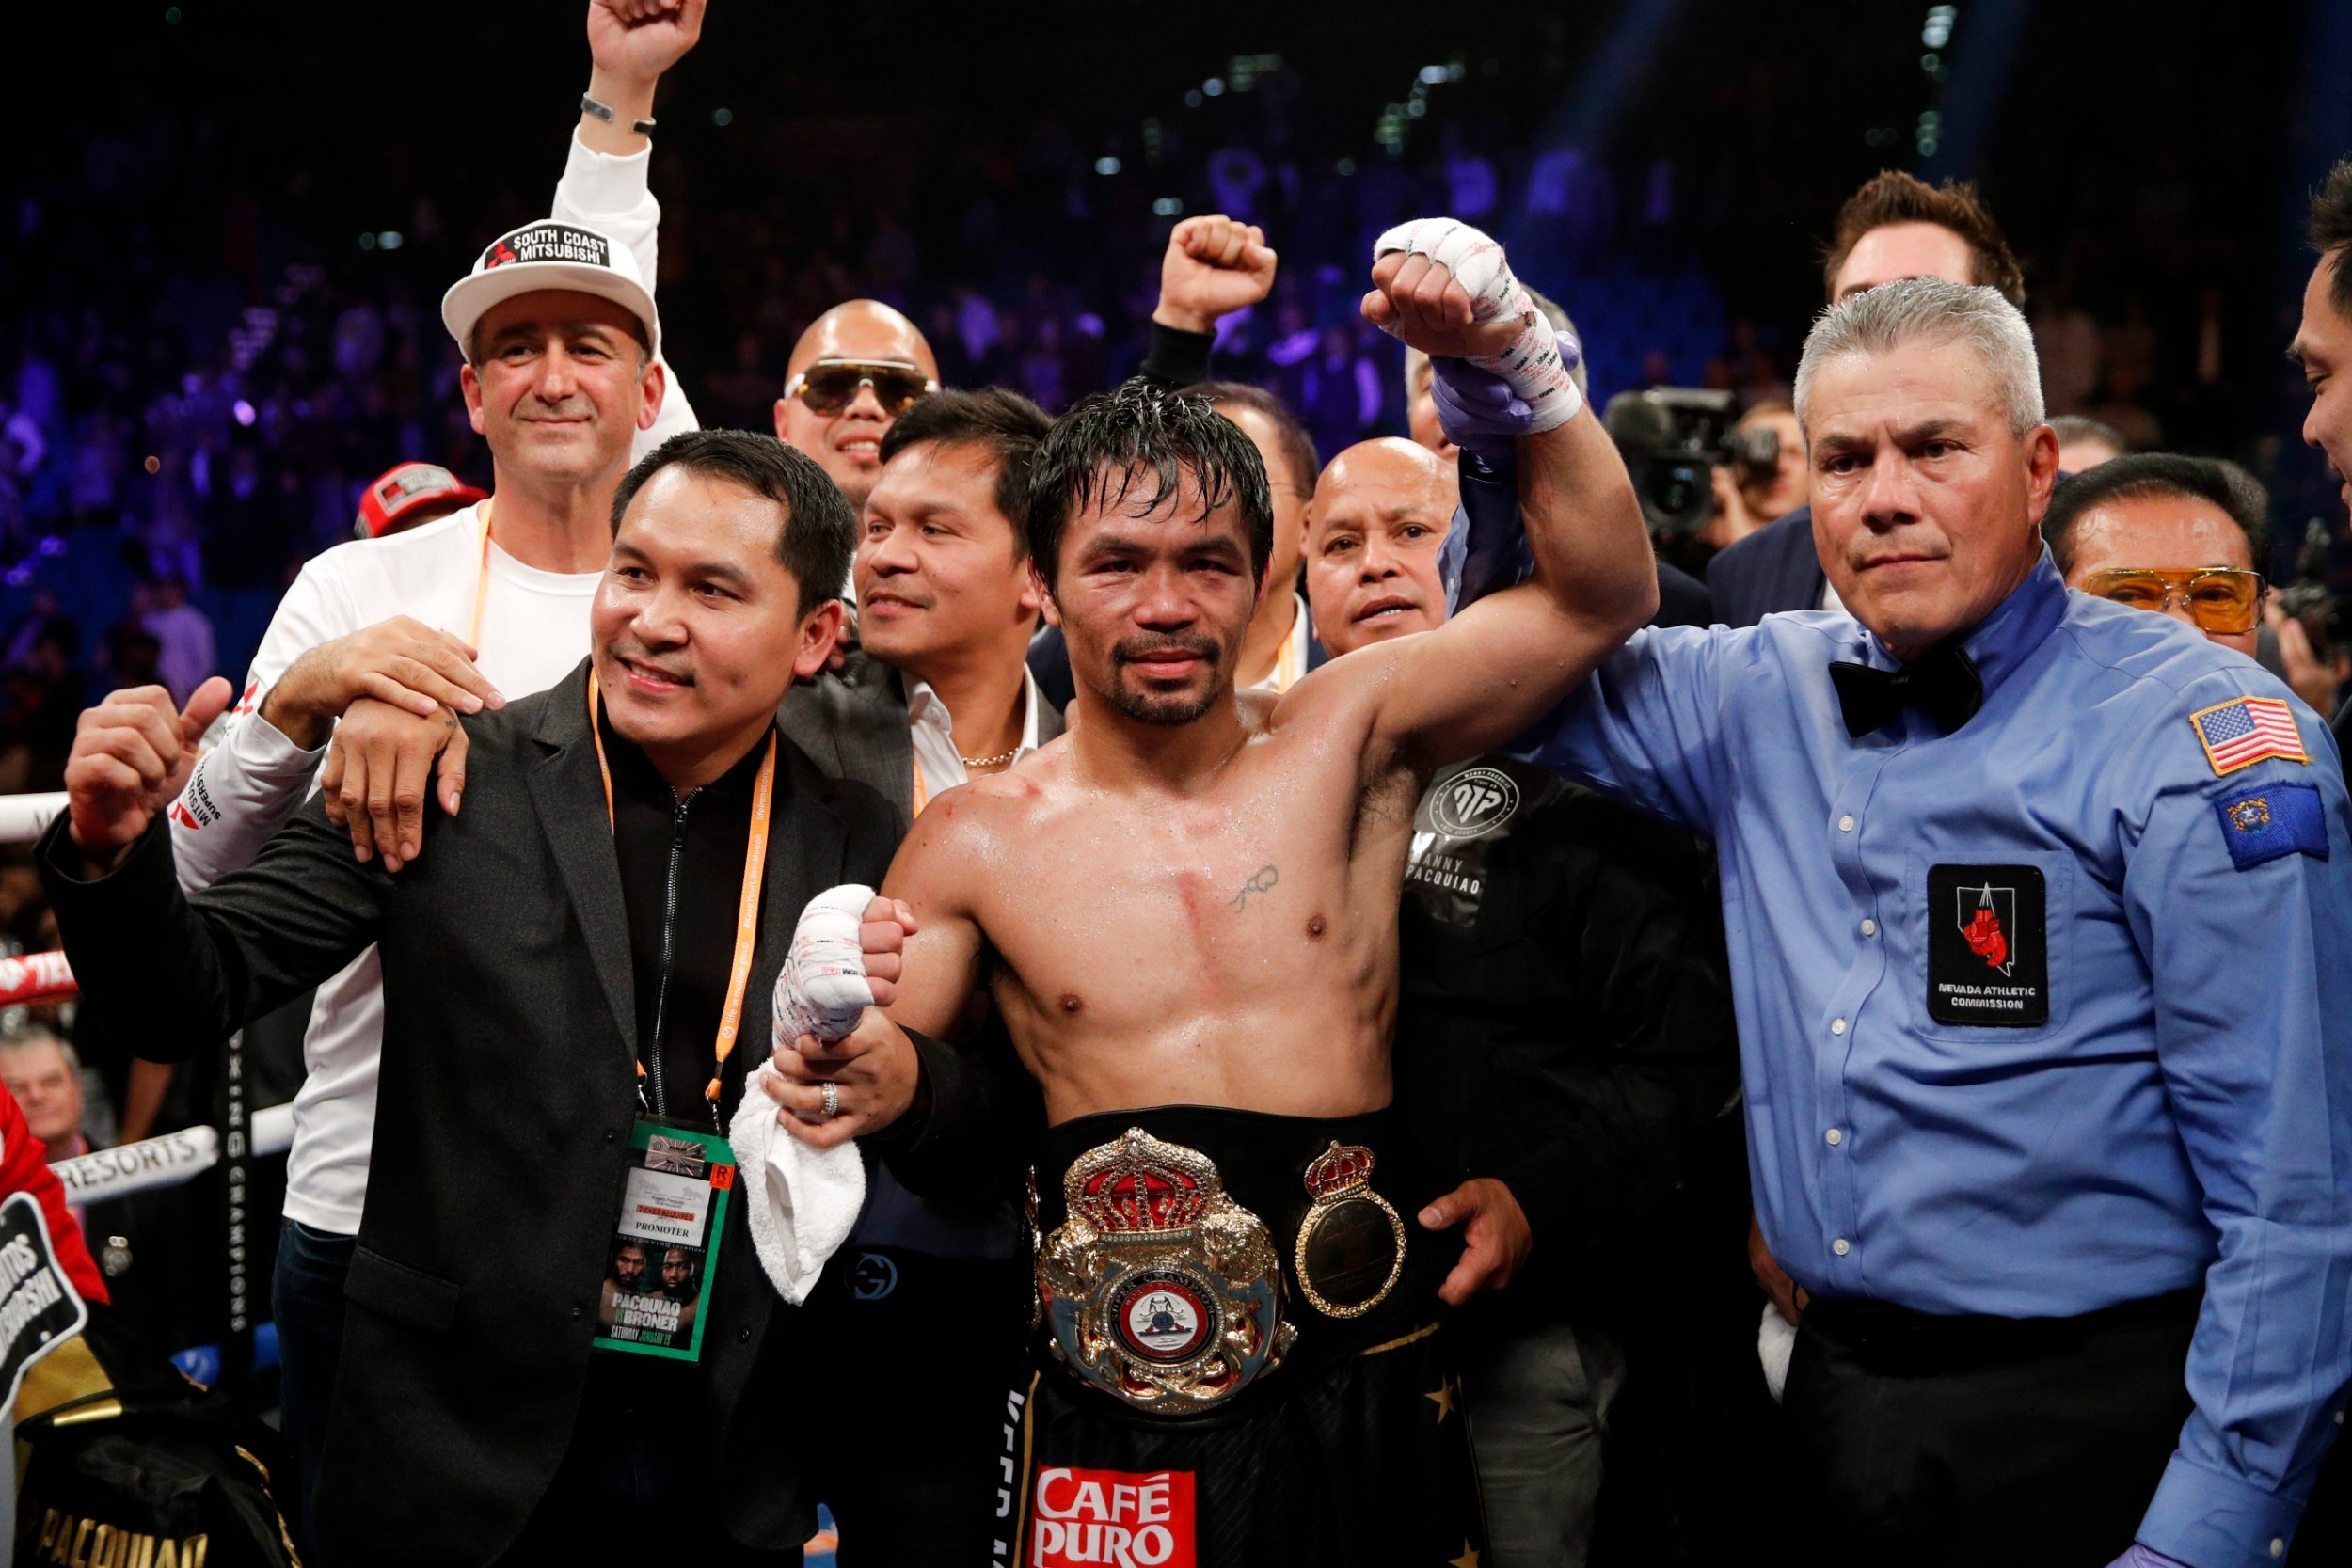 HustleTV.tv Manny Pacquiao Win Over Adrien Broner DJ Hustle